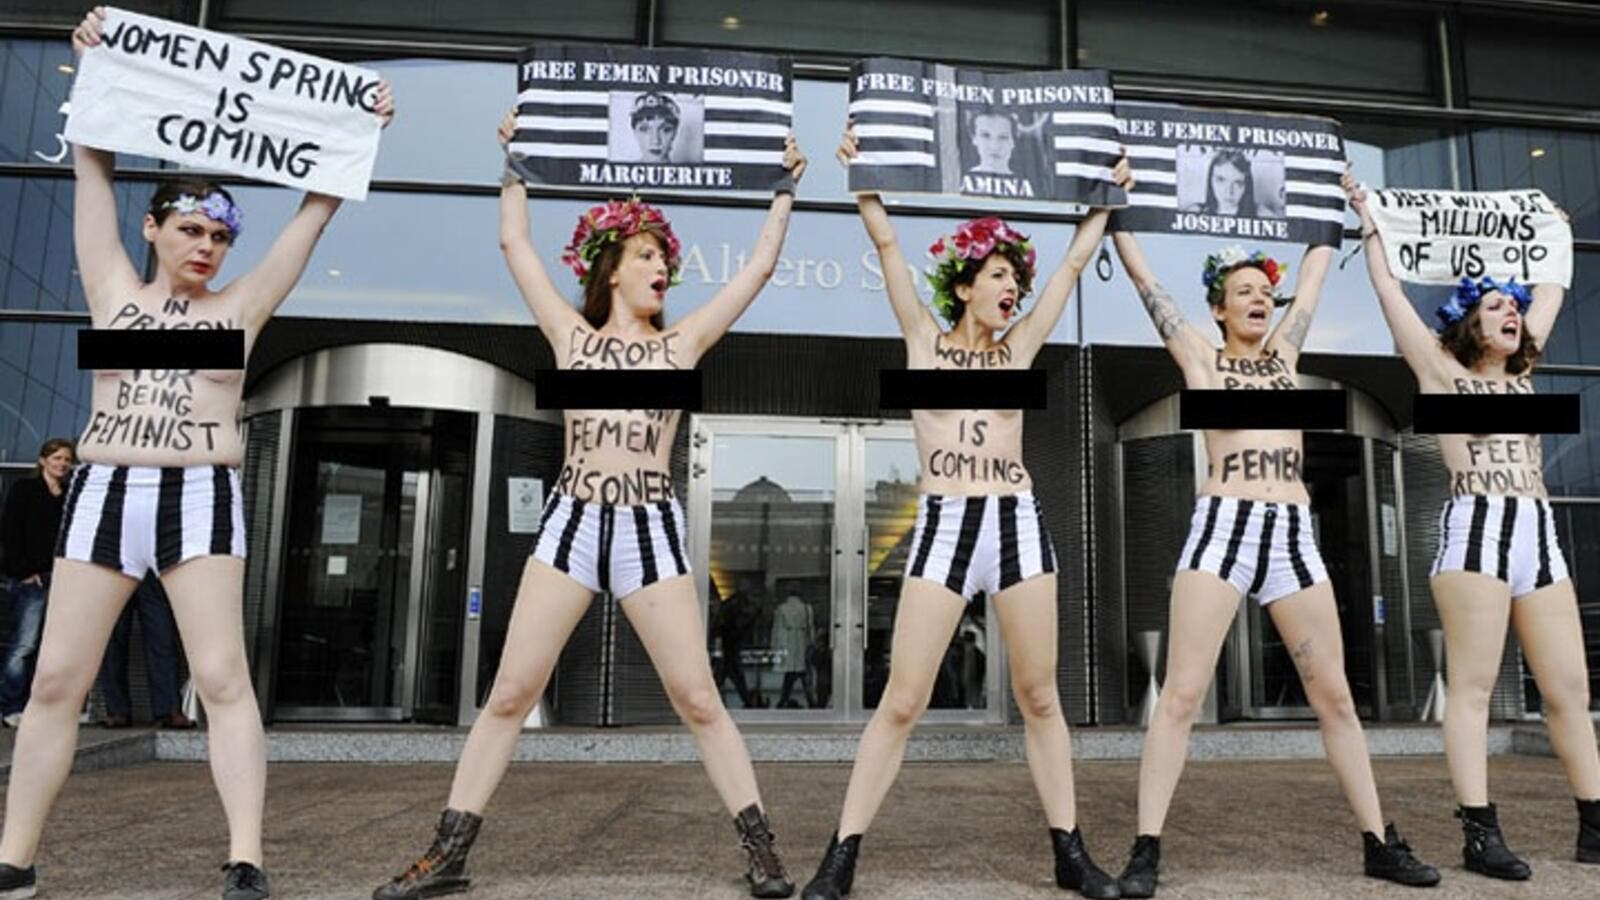 Members of the women's topless protest group Femen hold banners during a protest in front of the European Union Parliament in Brussels, to support a detained Tunisian activist and three European activists detained in Tunis. AFP photo